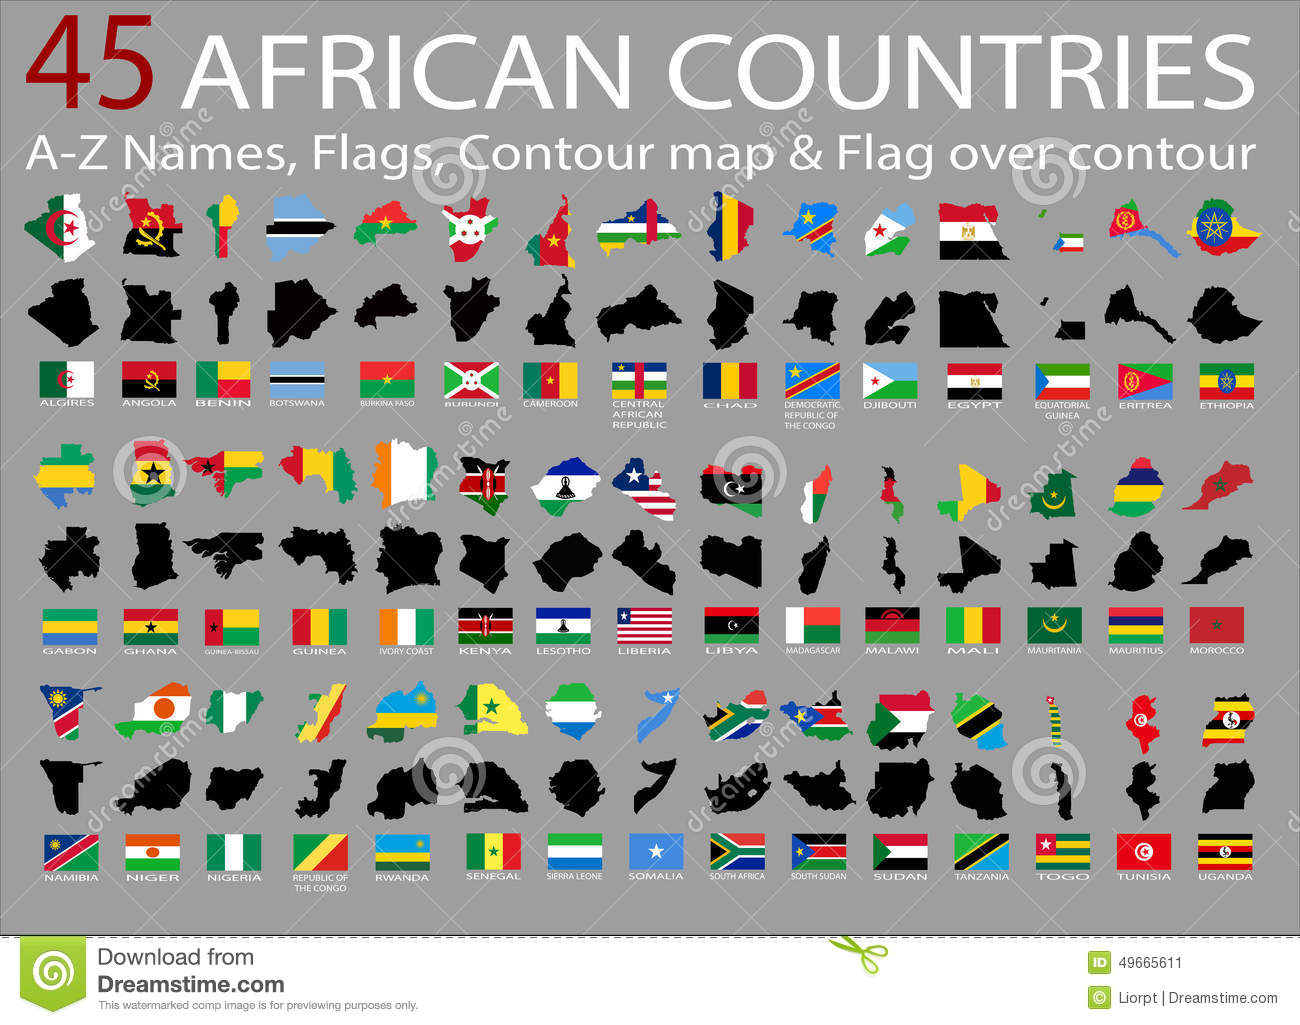 45 African Countries A Z Names Flags Contour And National Flag Over